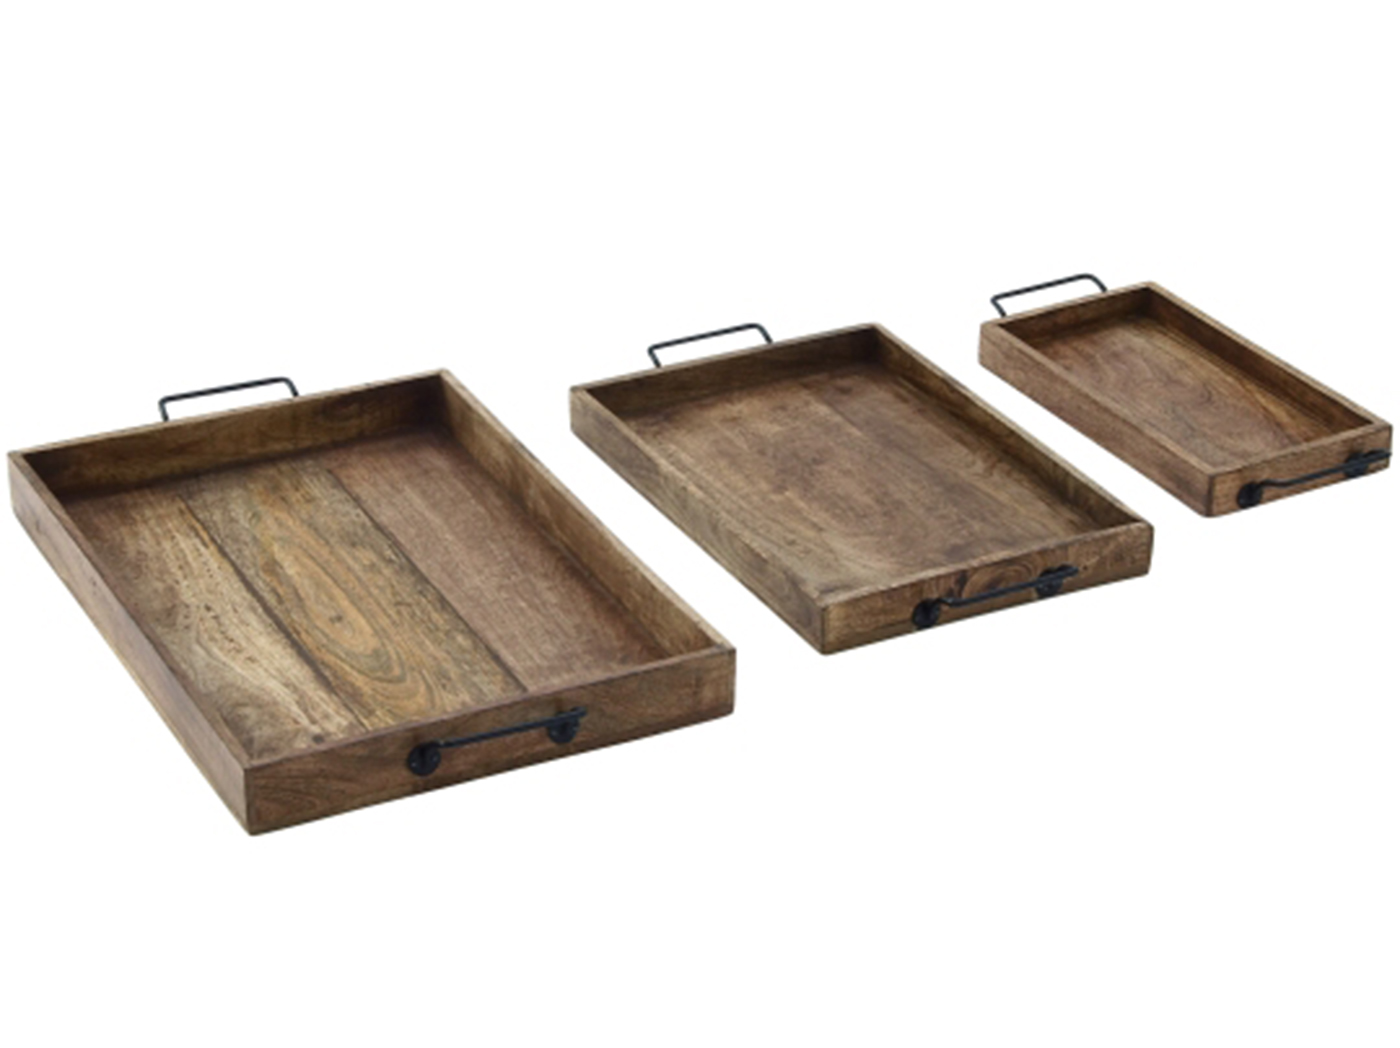 "Set of 3 Wood and Metal Tray 17/20/24""L"